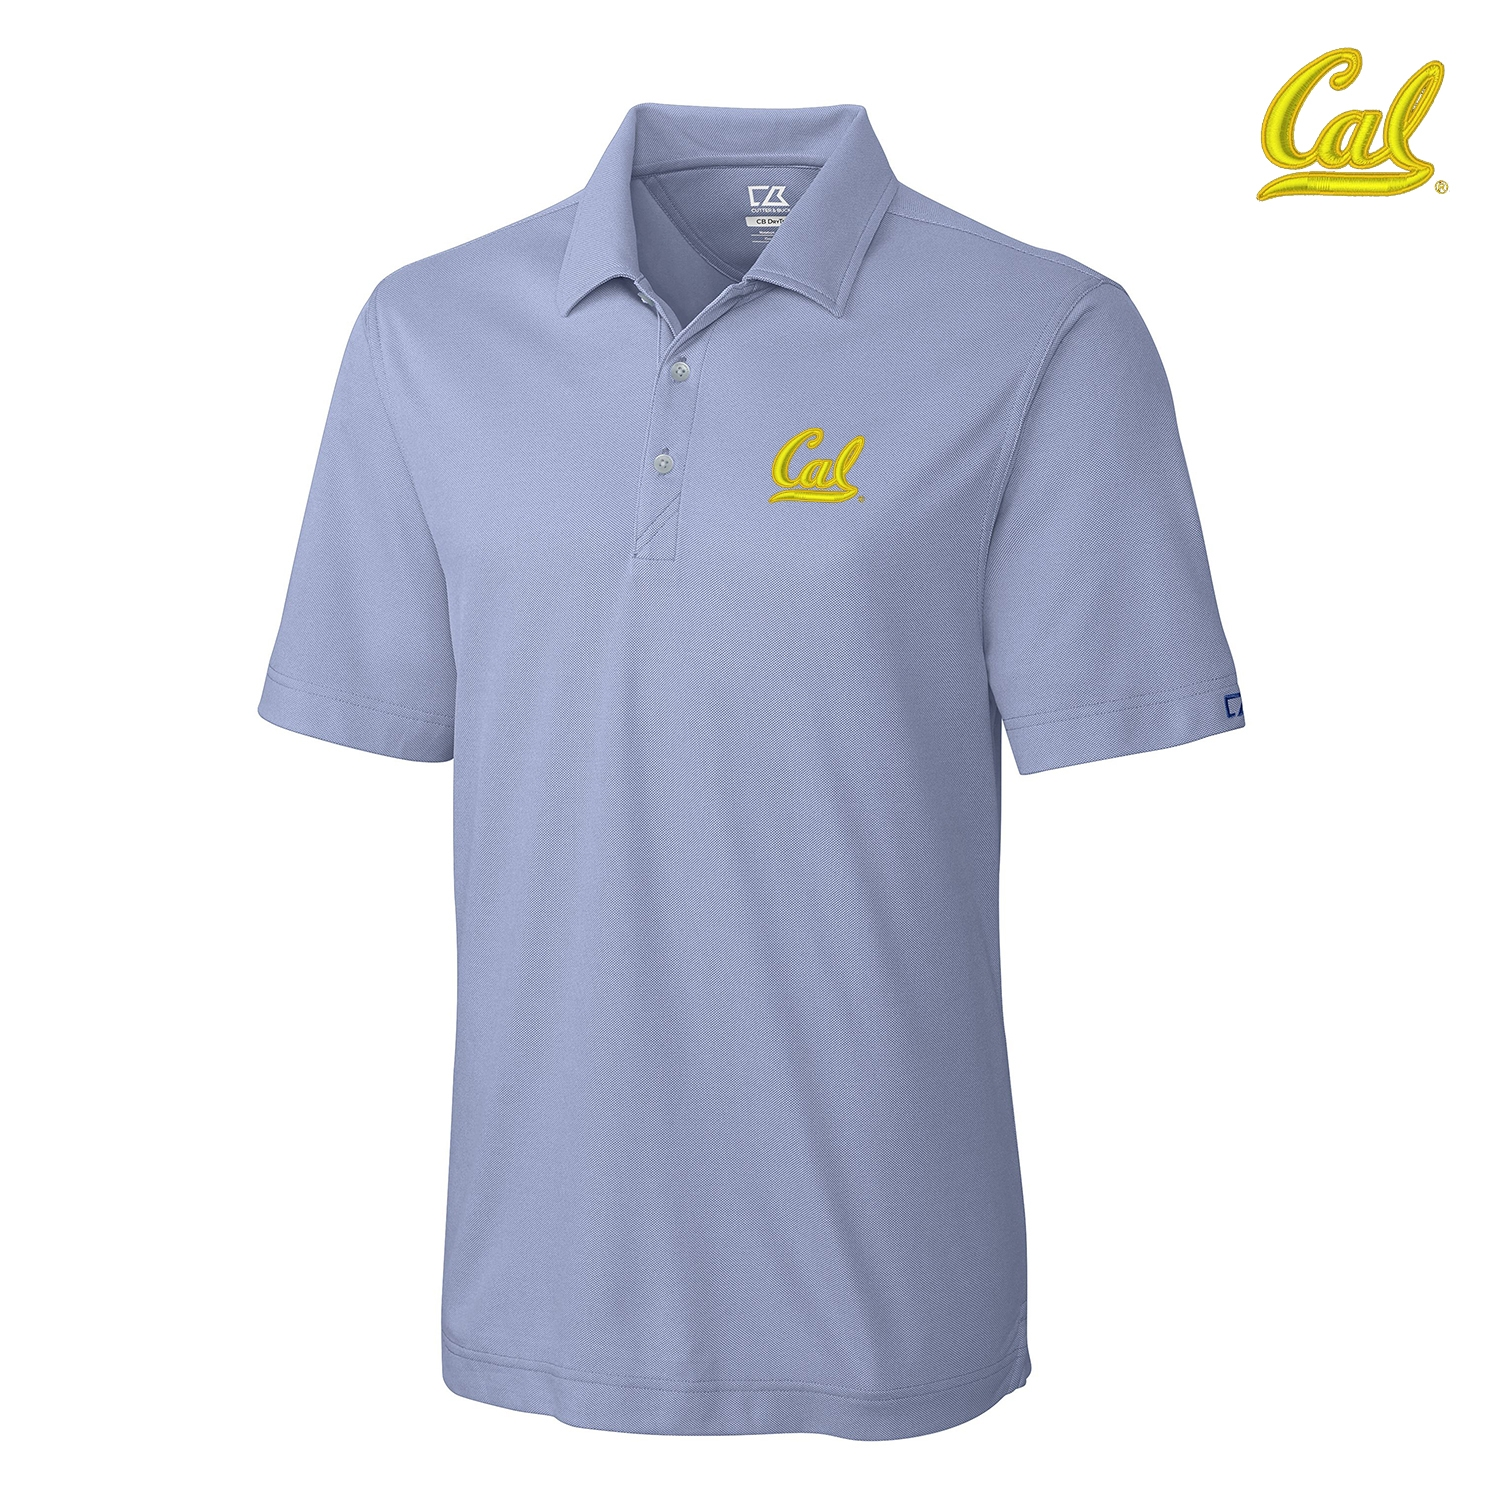 University of California Berkeley CB Drytec Blaine Oxford Polo by Cutter and Buck